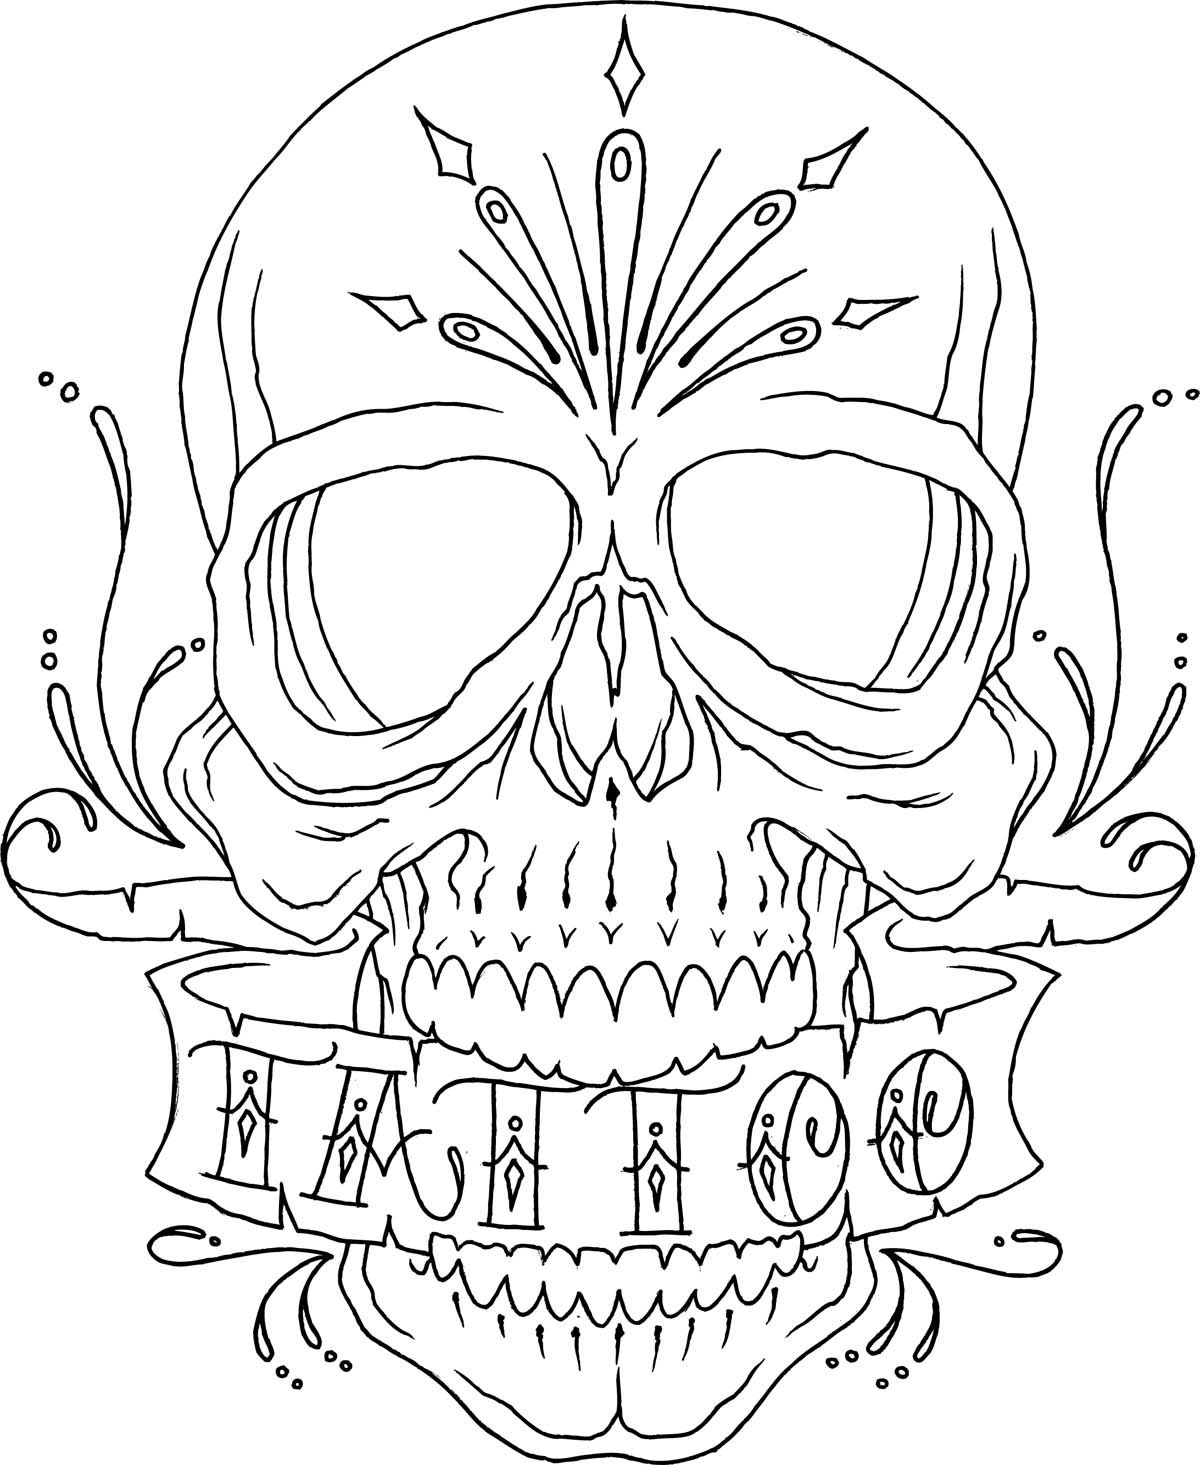 Skull Tattoo Line Drawing Skull coloring pages